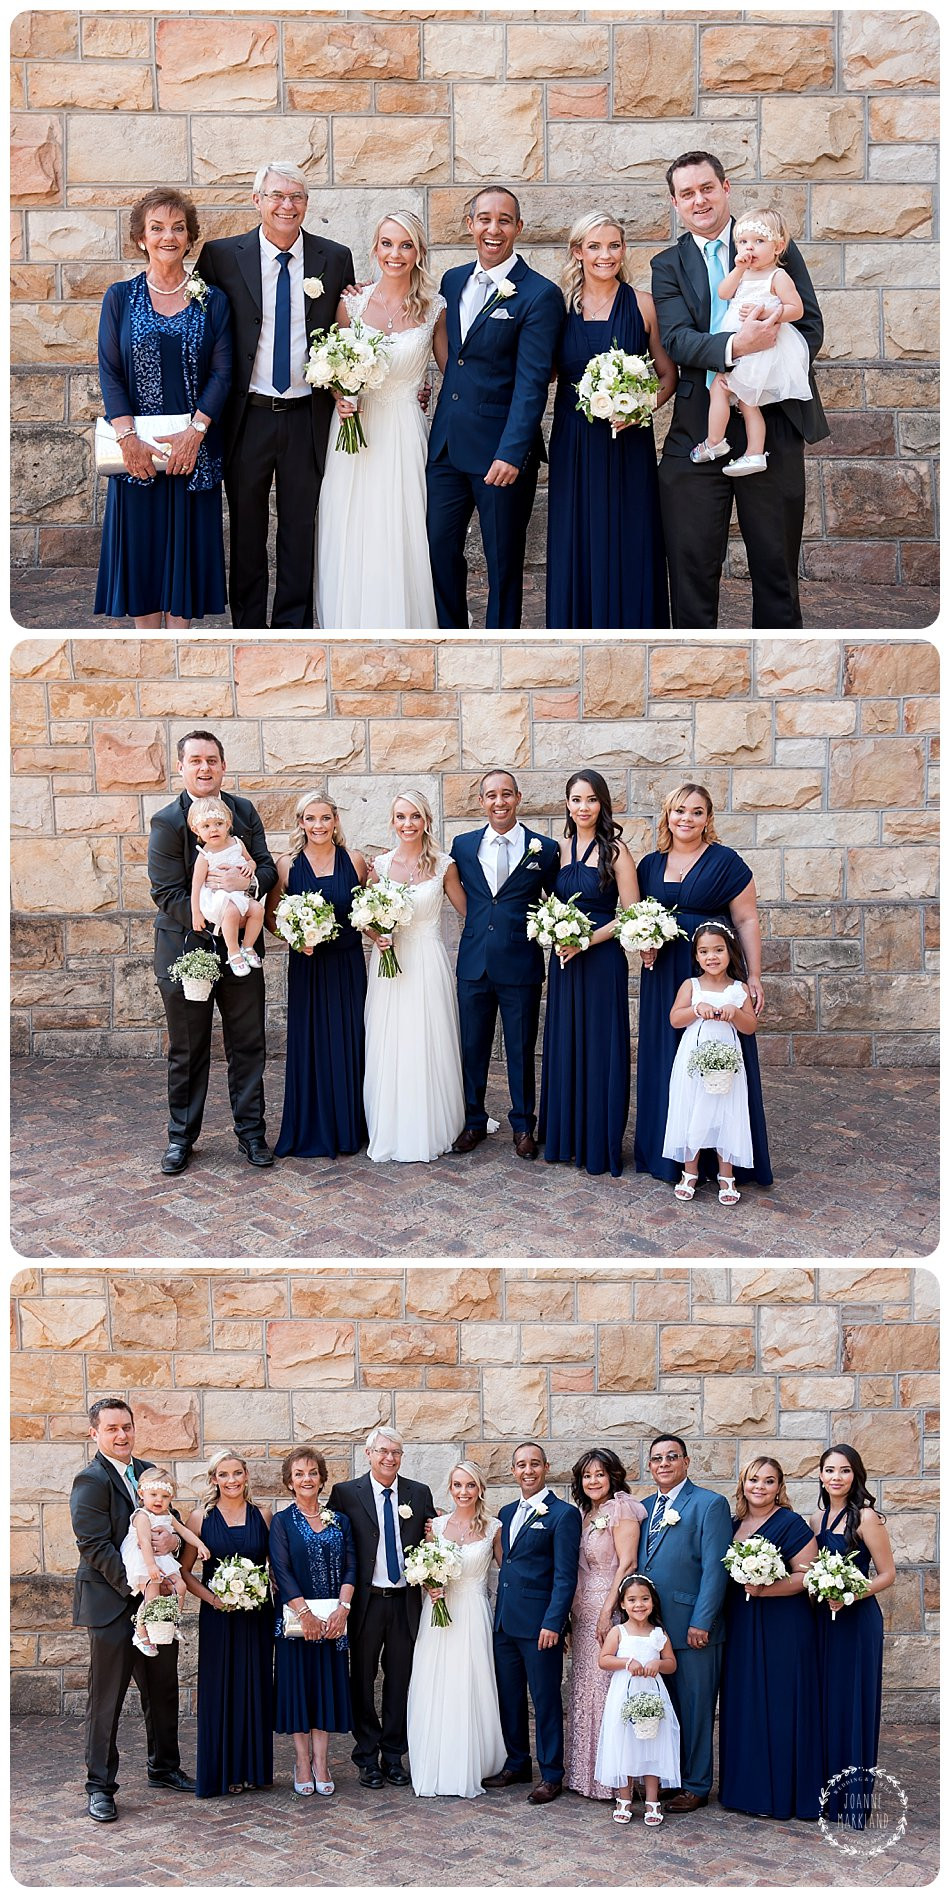 Steenberg_wedding_cape_town_photography_joanne_markland_photographer-033